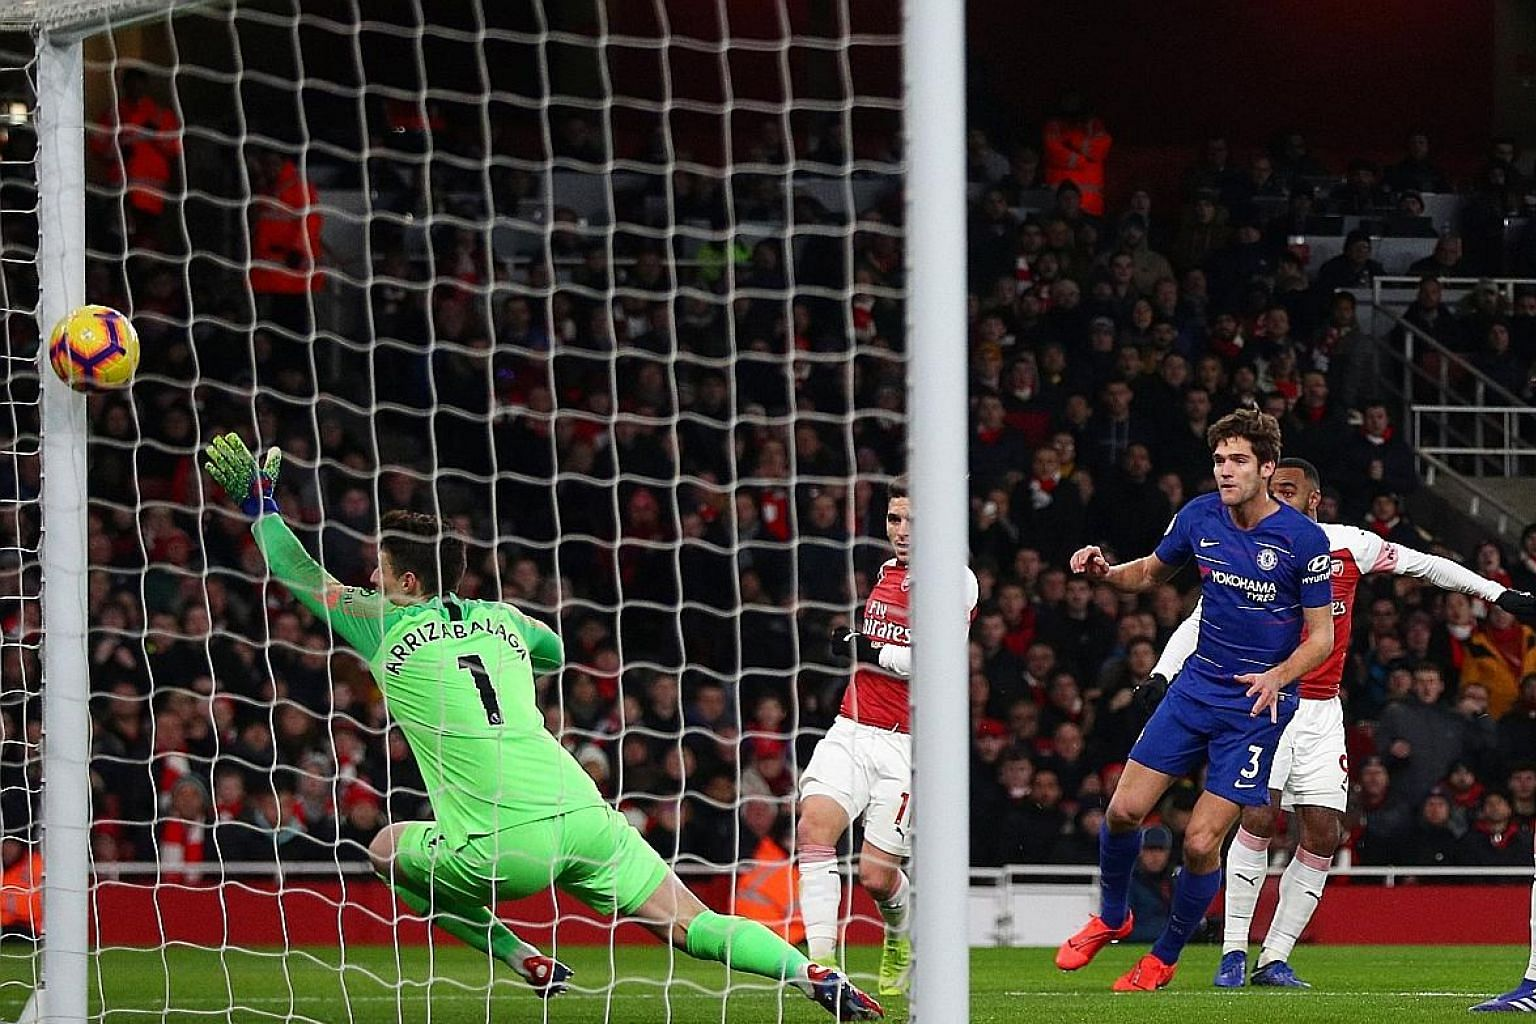 Alexandre Lacazette (right, partly hidden) scoring Arsenal's first goal against Chelsea on Saturday. The Blues lost 2-0 and manager Maurizio Sarri insisted it was his players' attitude, not his system, that was the problem.